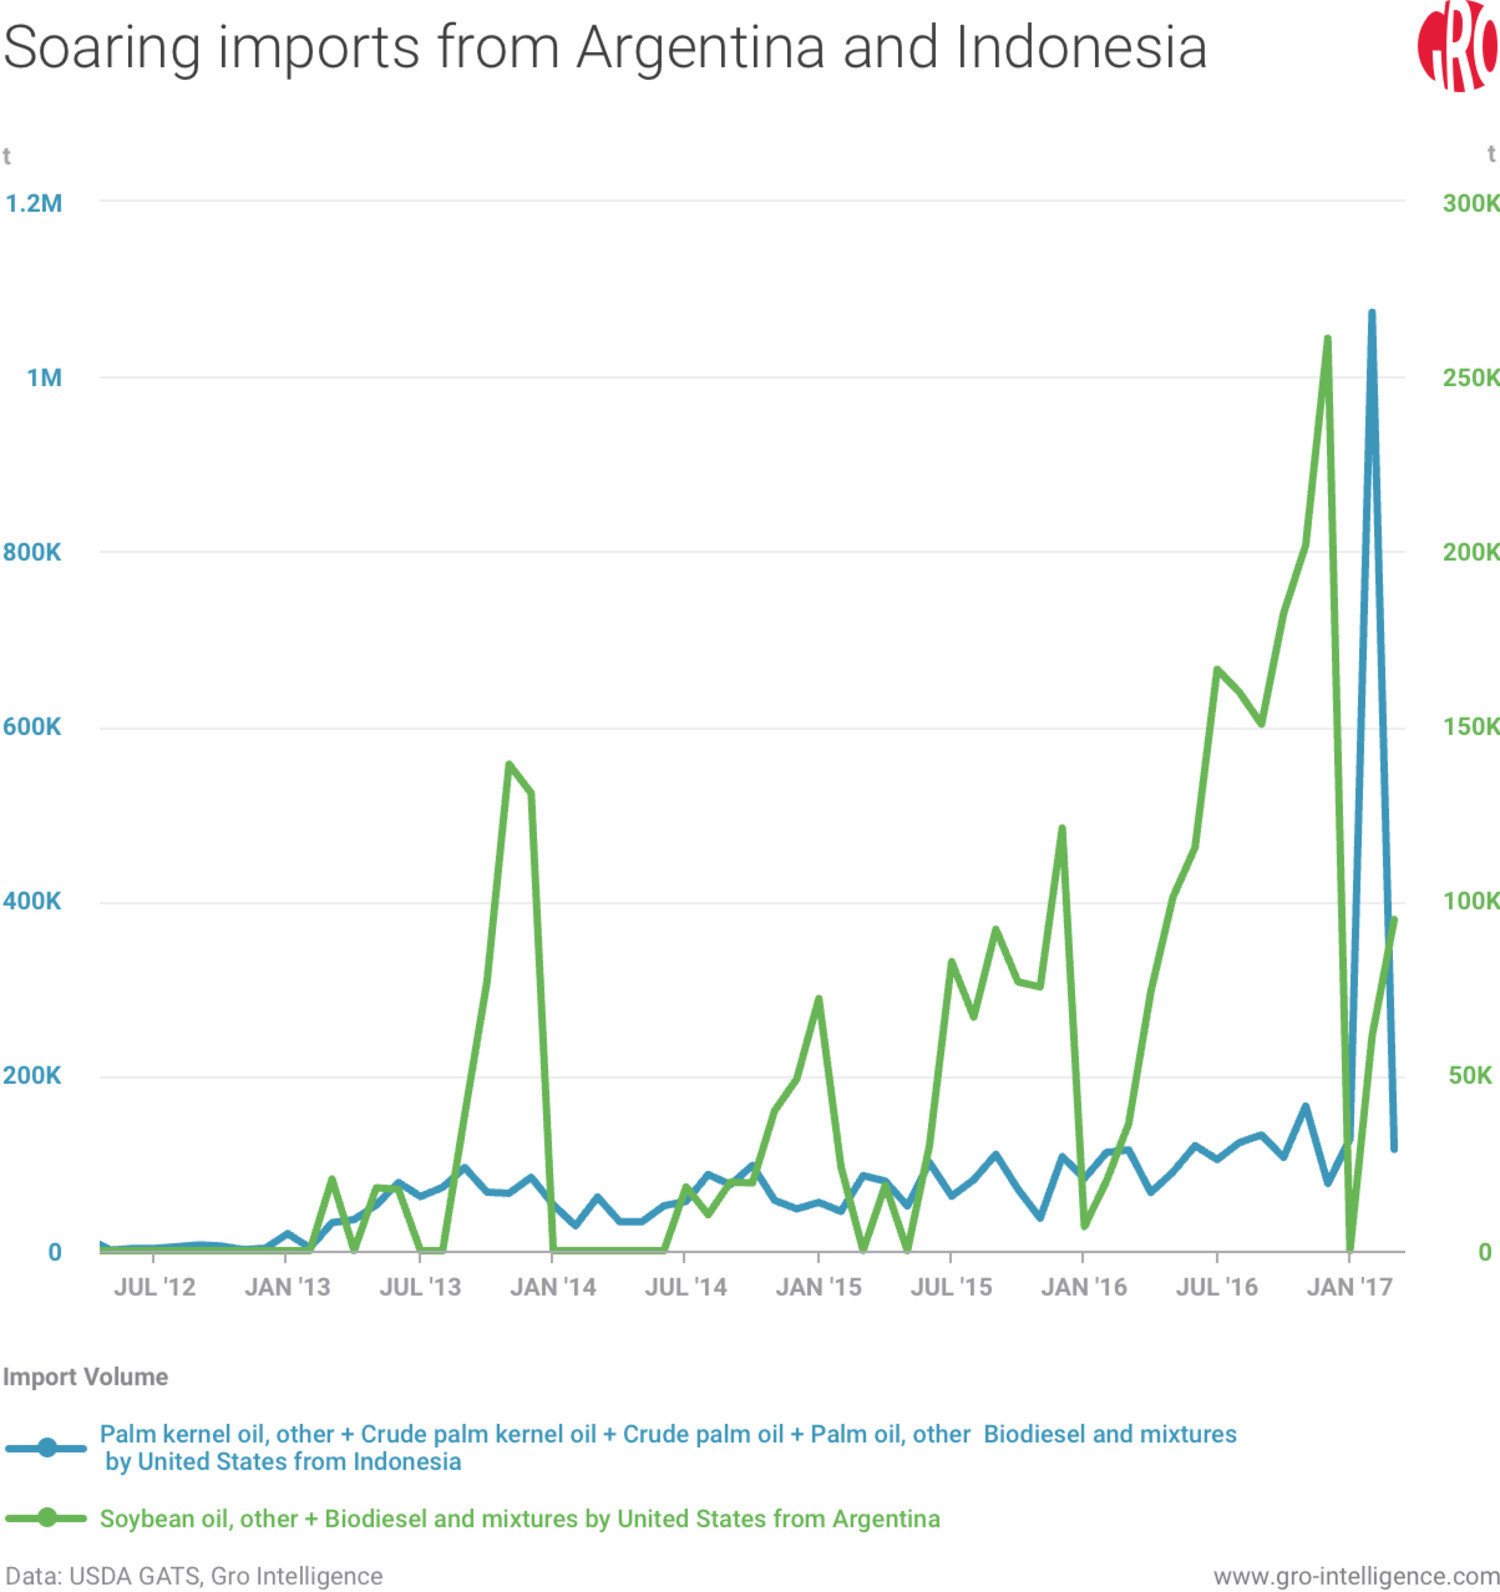 Soaring imports from Argentina and Indonesia (in tons)